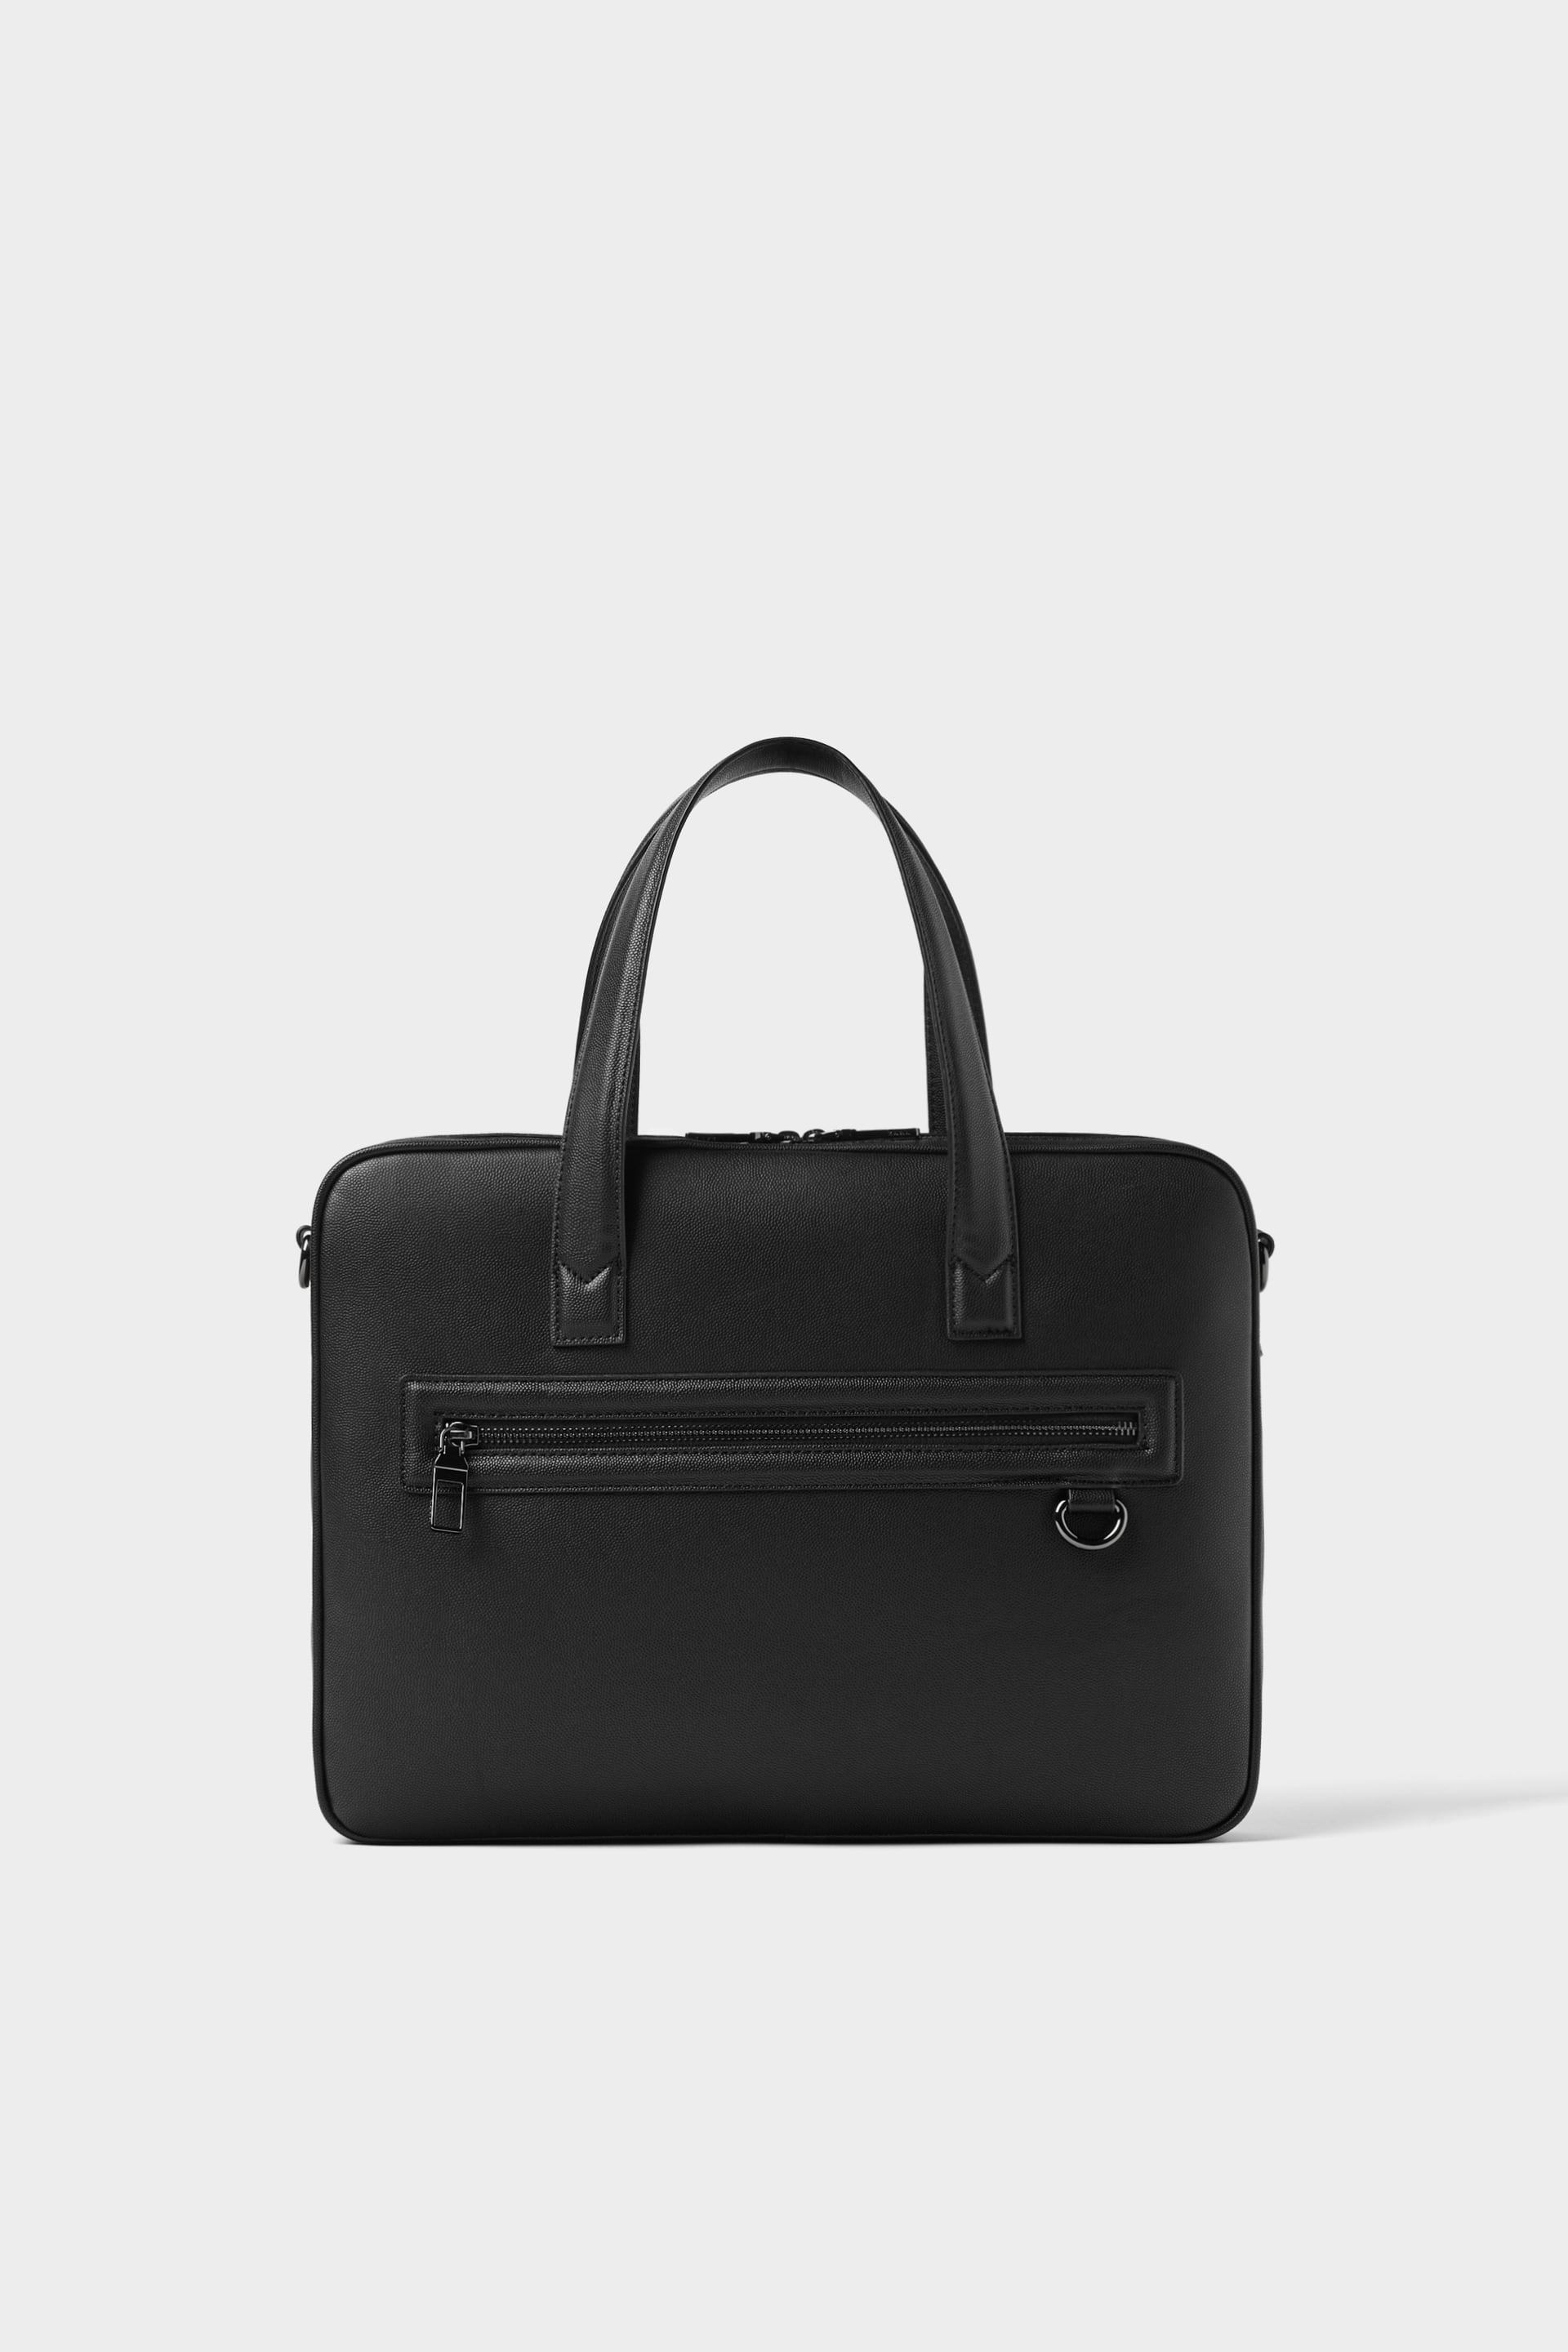 c556a3bad3 BASIC BLACK SLIM BRIEFCASE - BAGS AND BACKPACKS-MAN-SHOES&BAGS ...